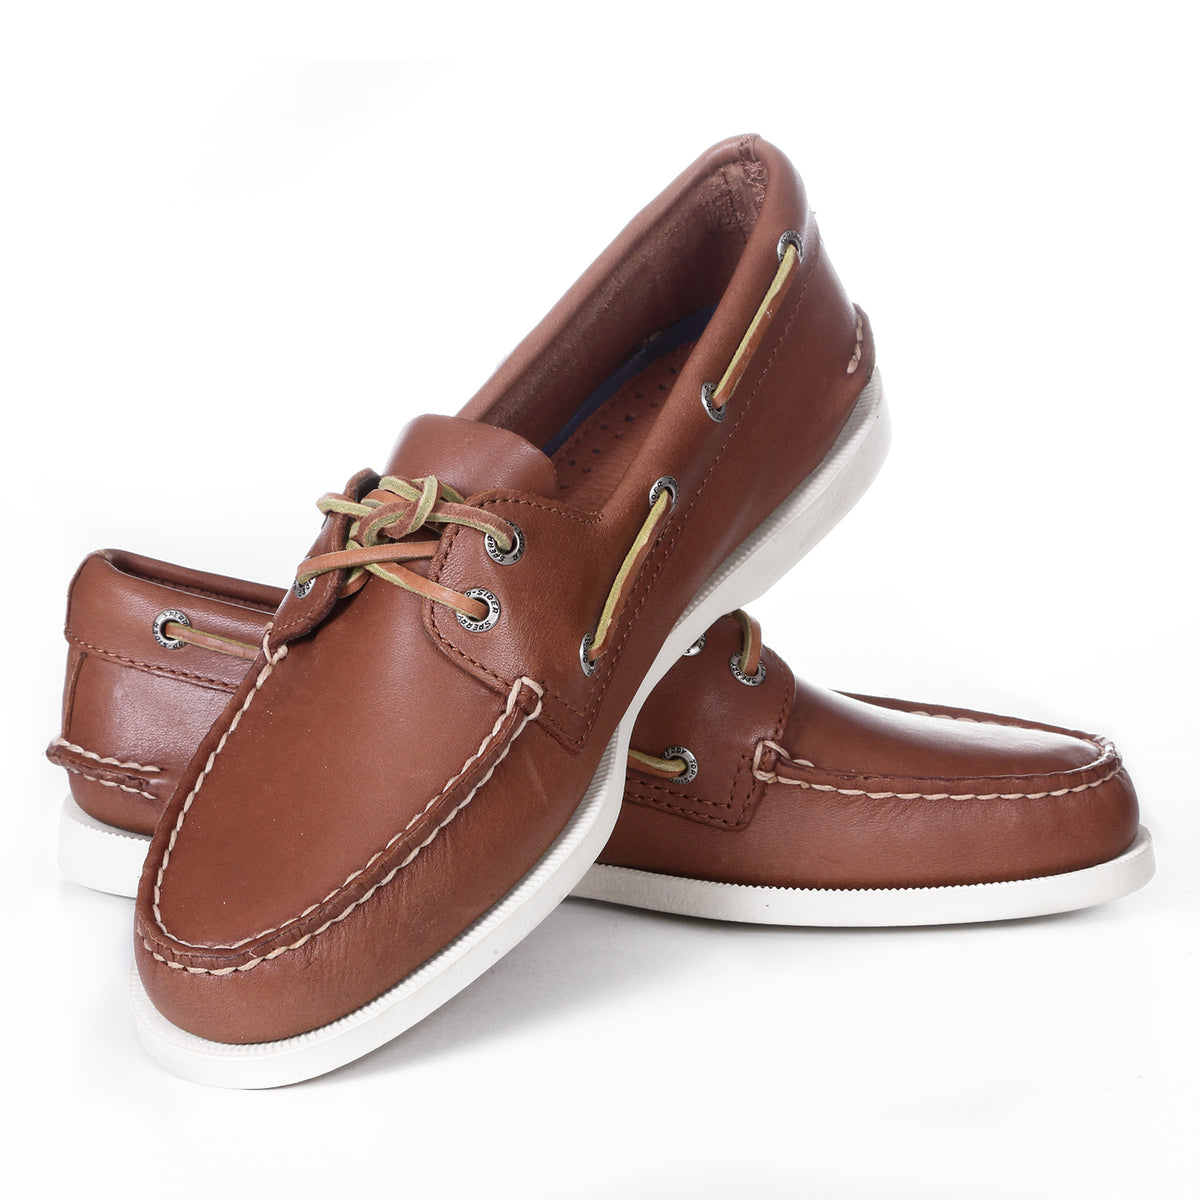 Sperry Topsider - Authentic Original 2-Eye Boat Shoes - Tan